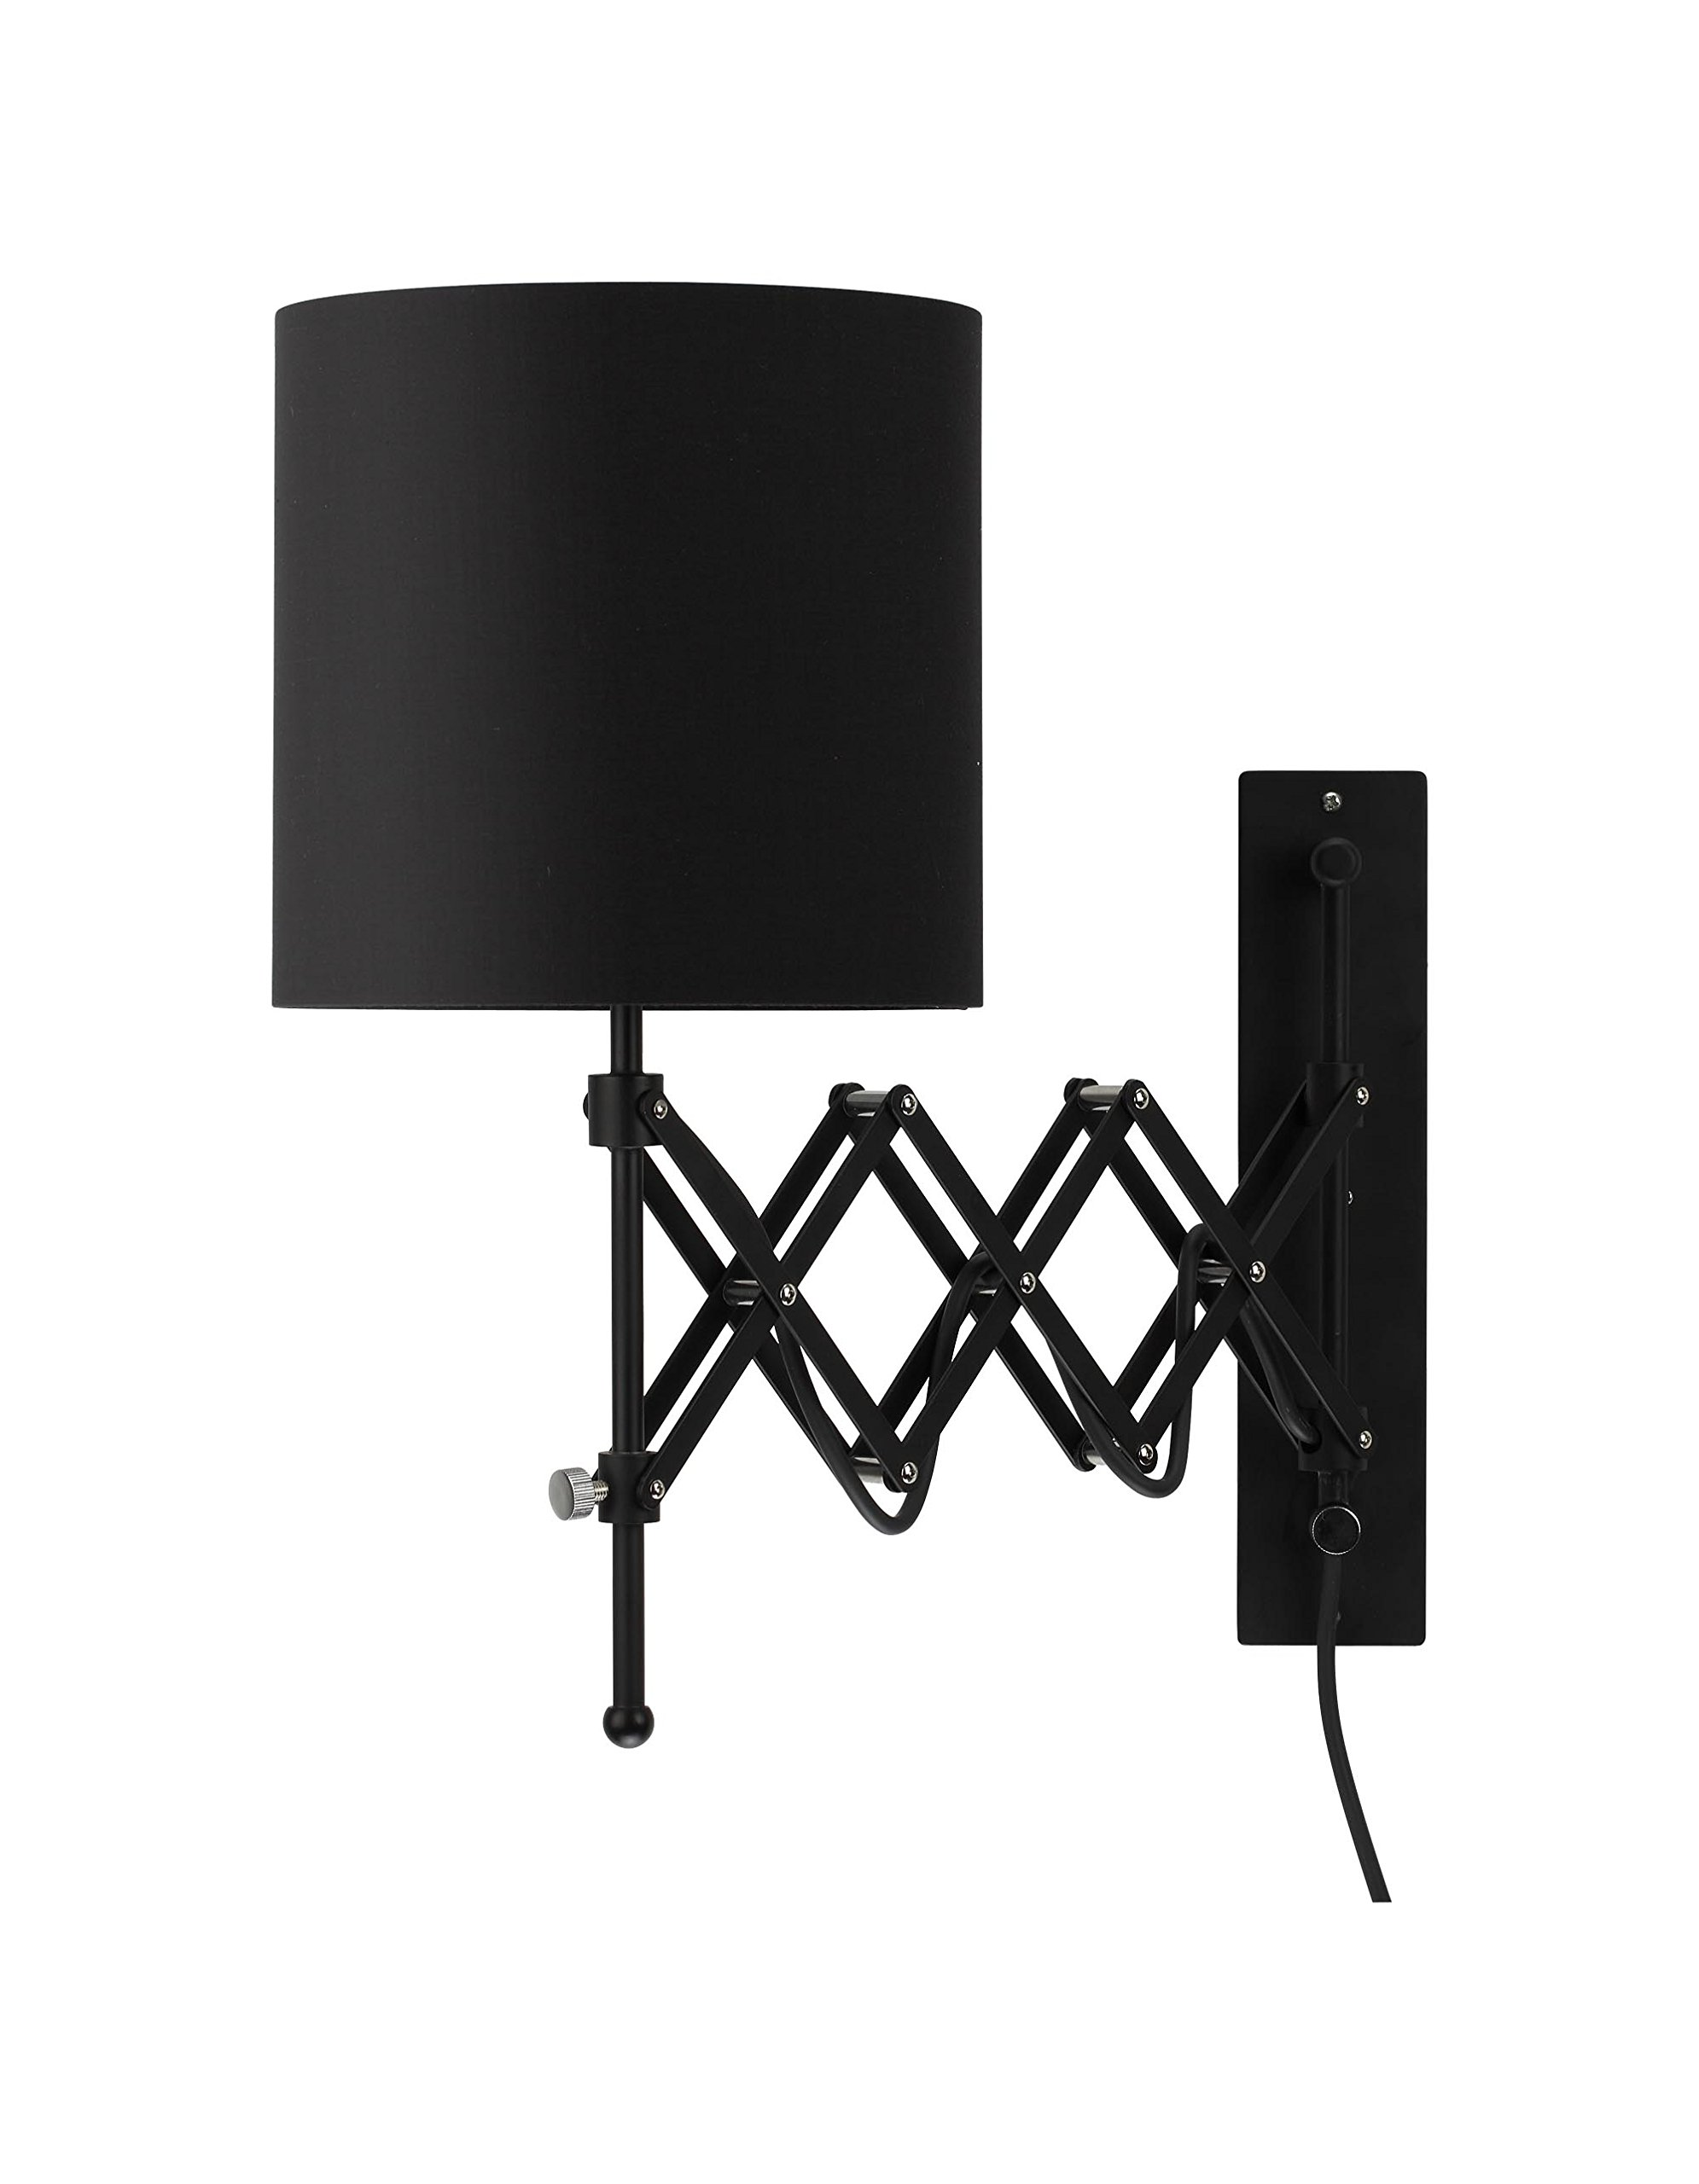 Modernluci Wall Lamp Plug In Wall Lights Bedroom Sconce E27 Black Energy Class A Buy Online In Cook Islands At Cook Desertcart Com Productid 103111666